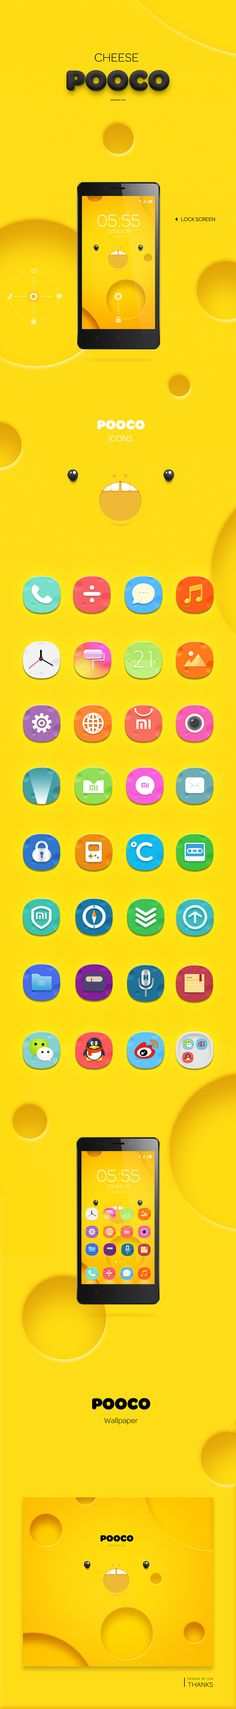 miui design , do you like cheese pooco? on App Design Served